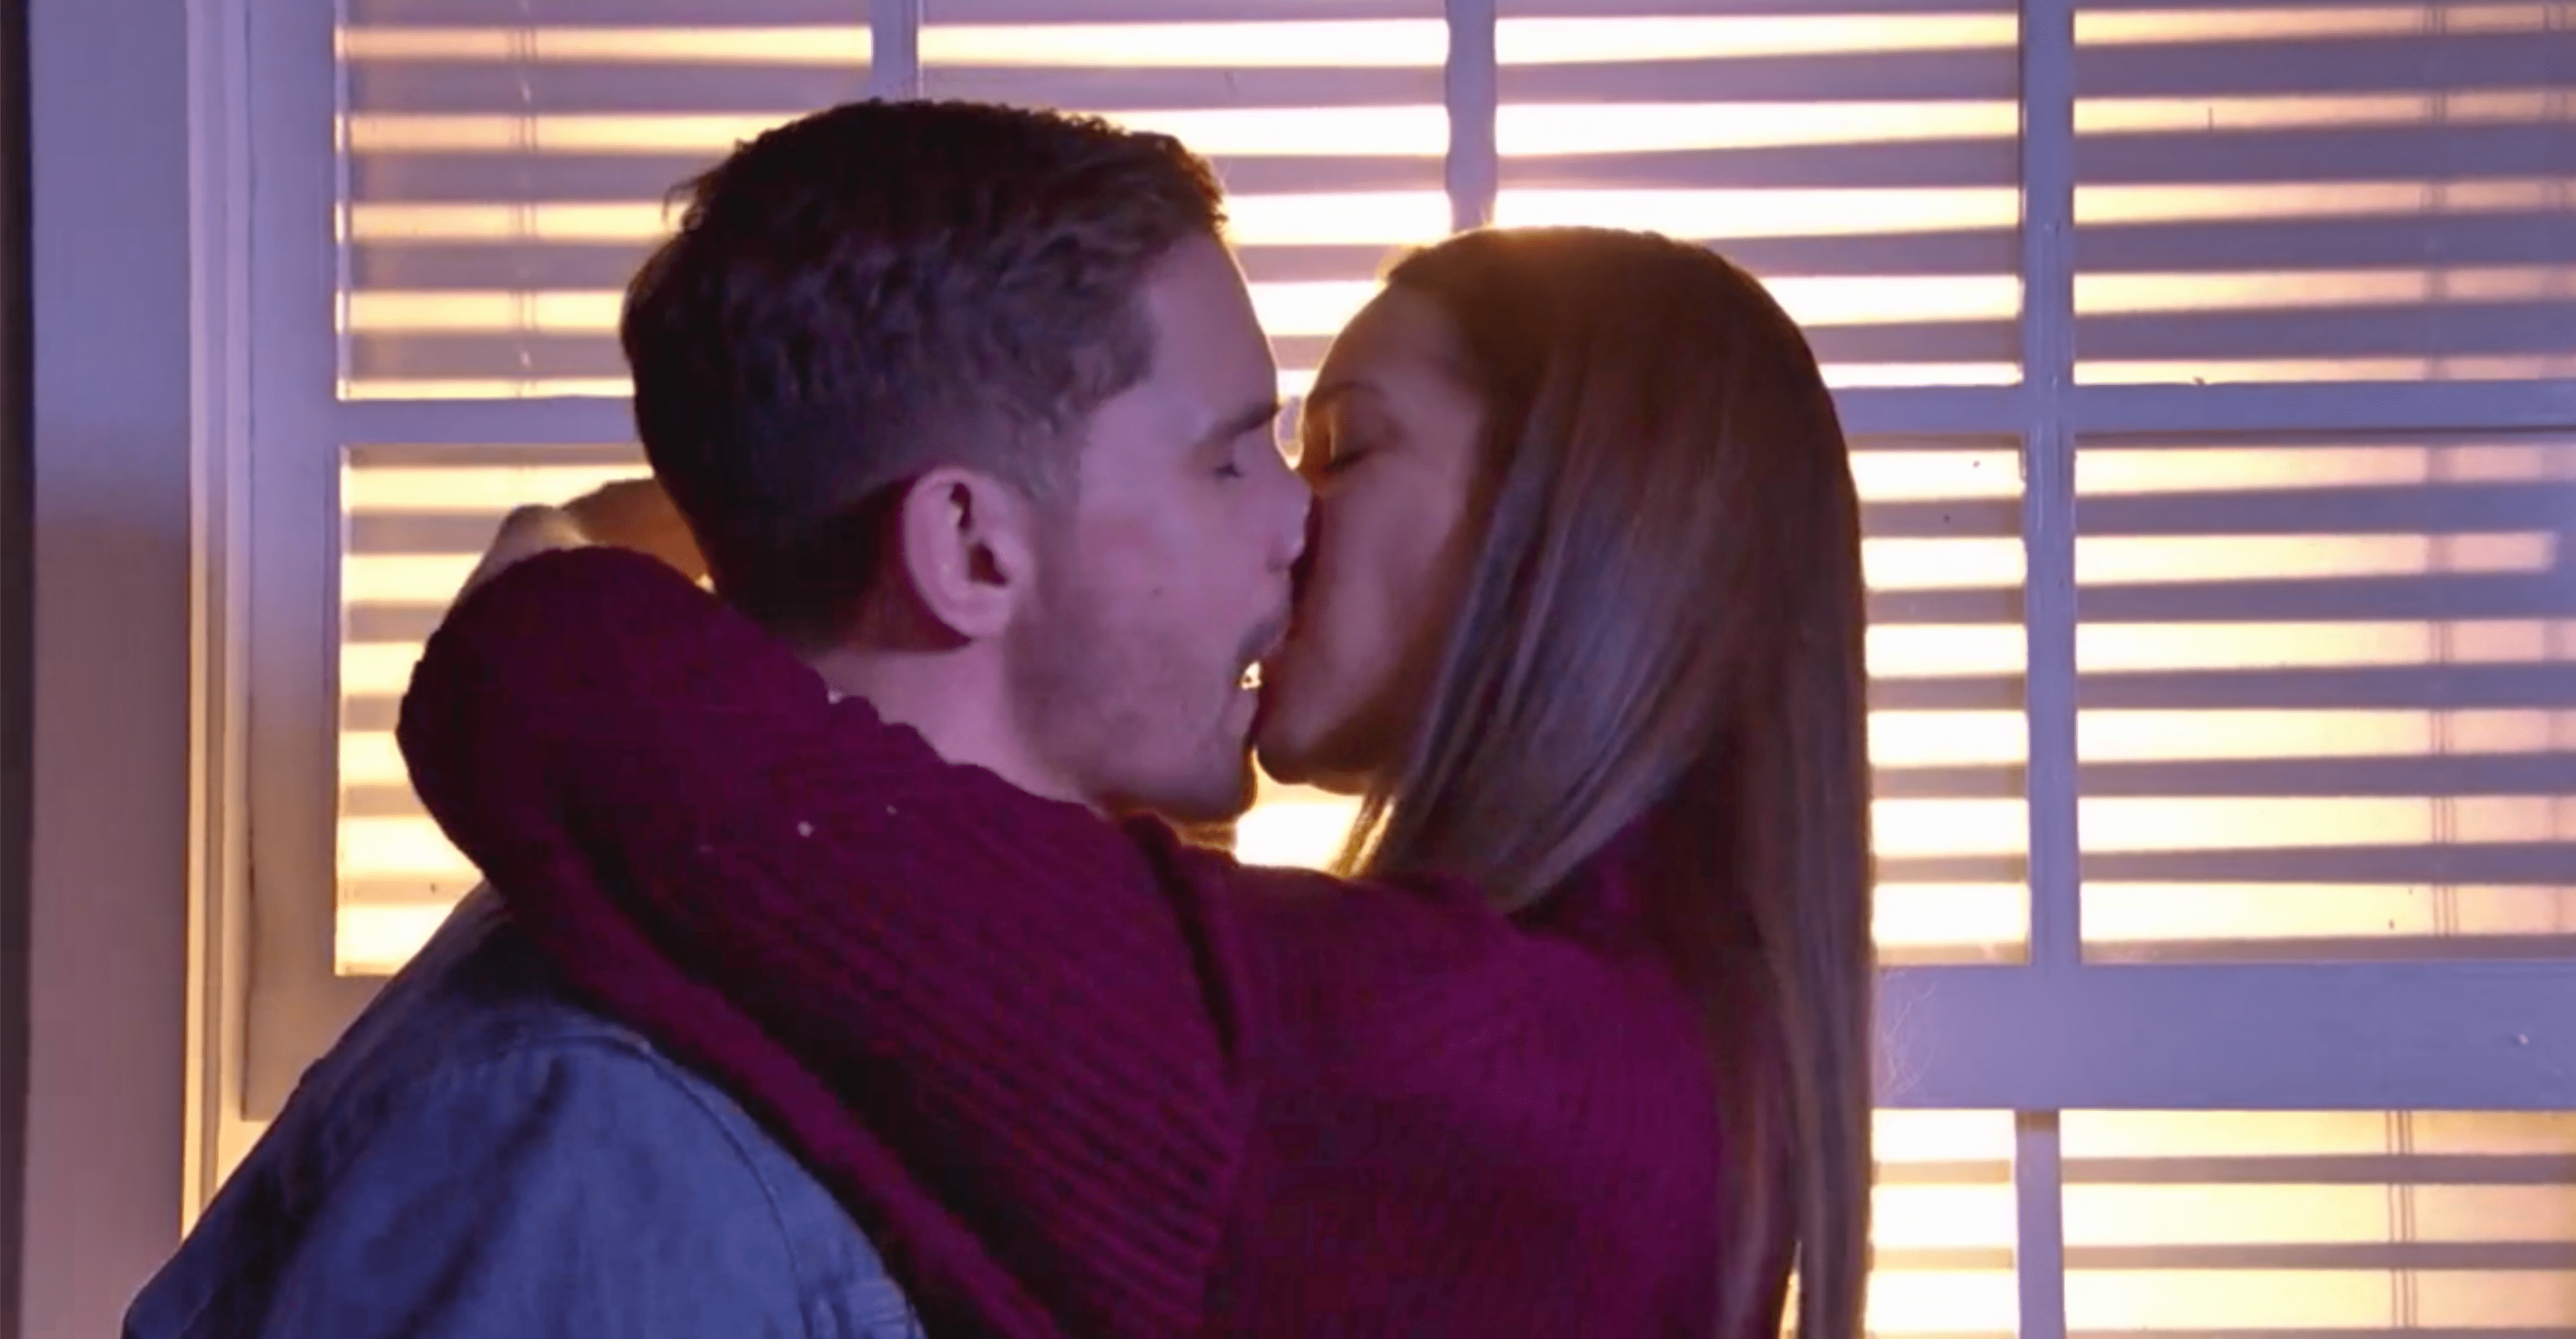 Hollyoaks spoilers: Sienna Blake and Brody Hudson get back together in shock twist